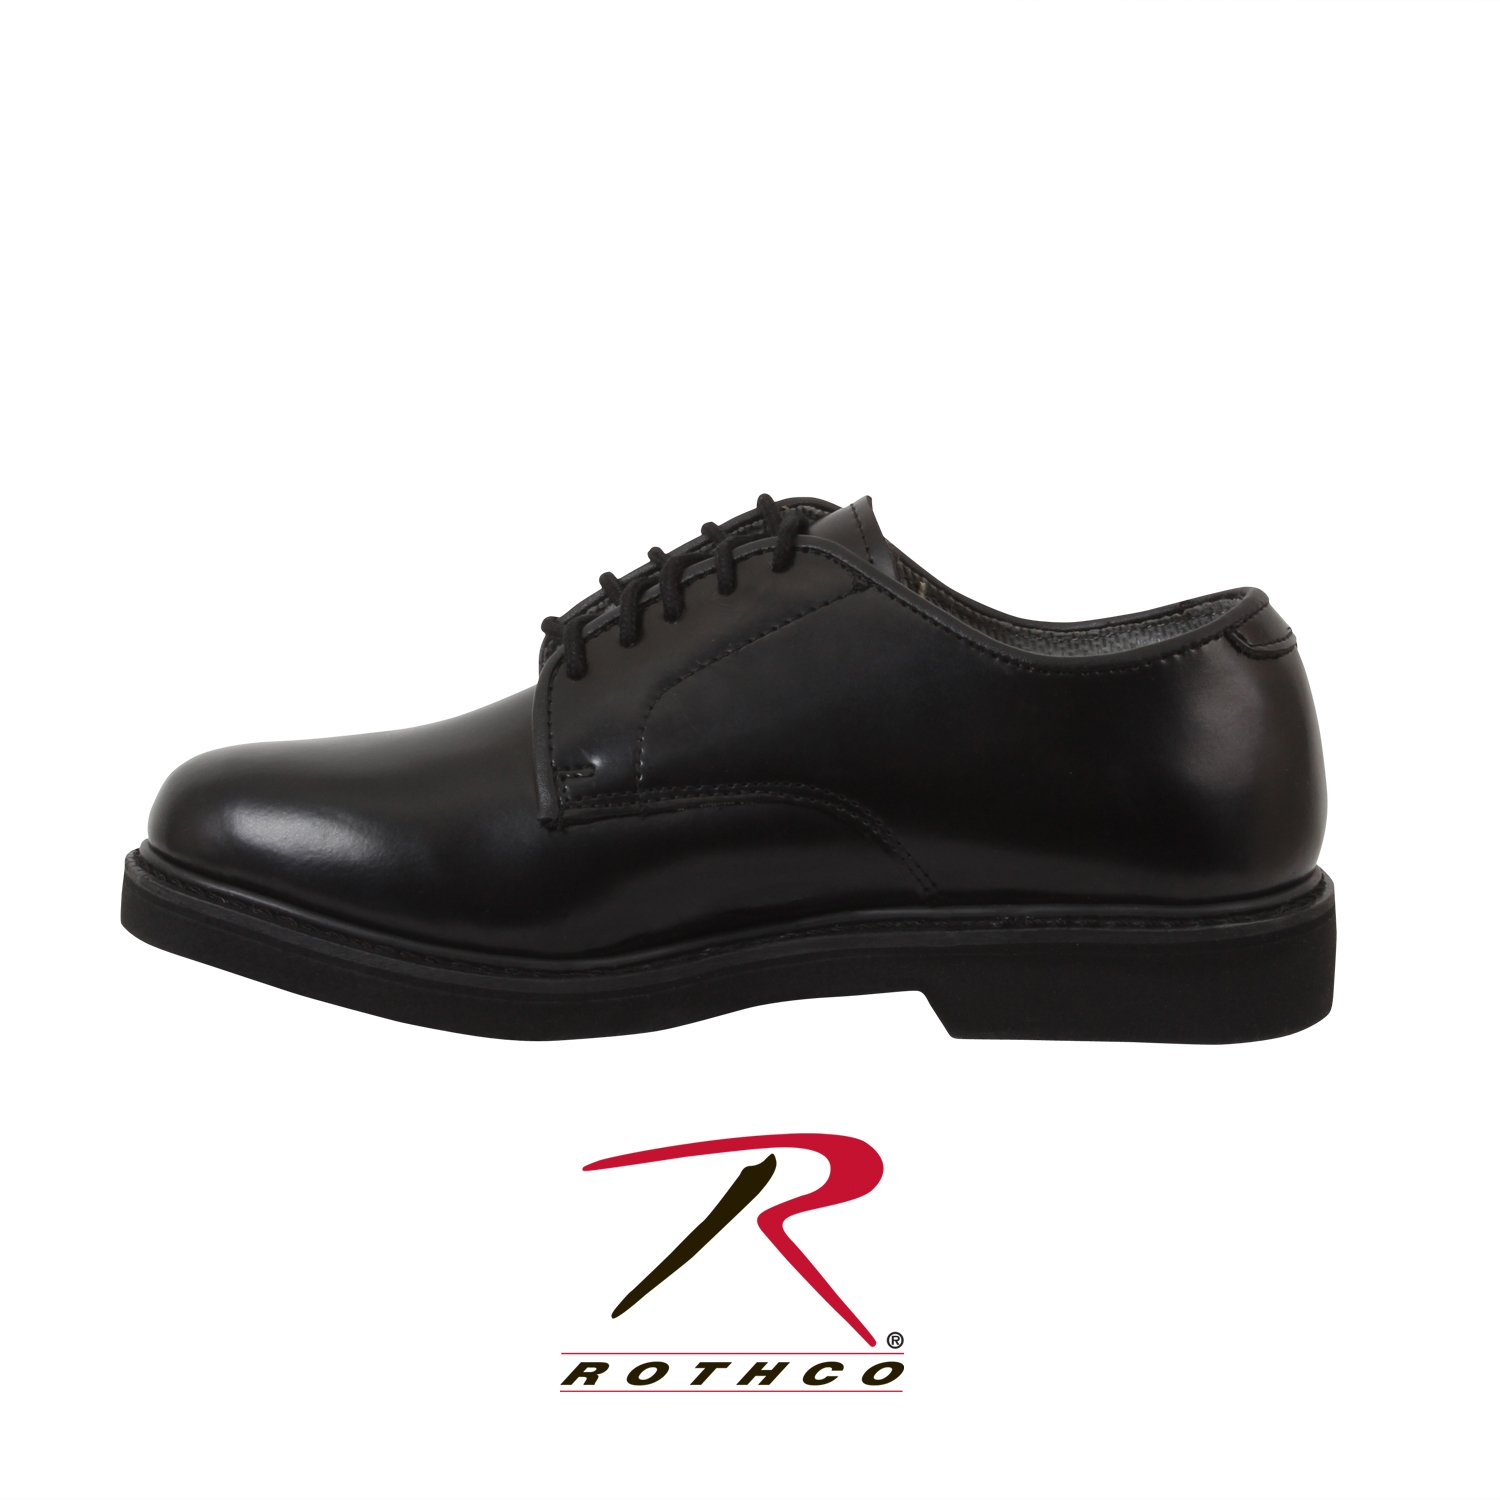 Rothco Soft Sole Uniform Oxford/Leather Shoe, Black, 8